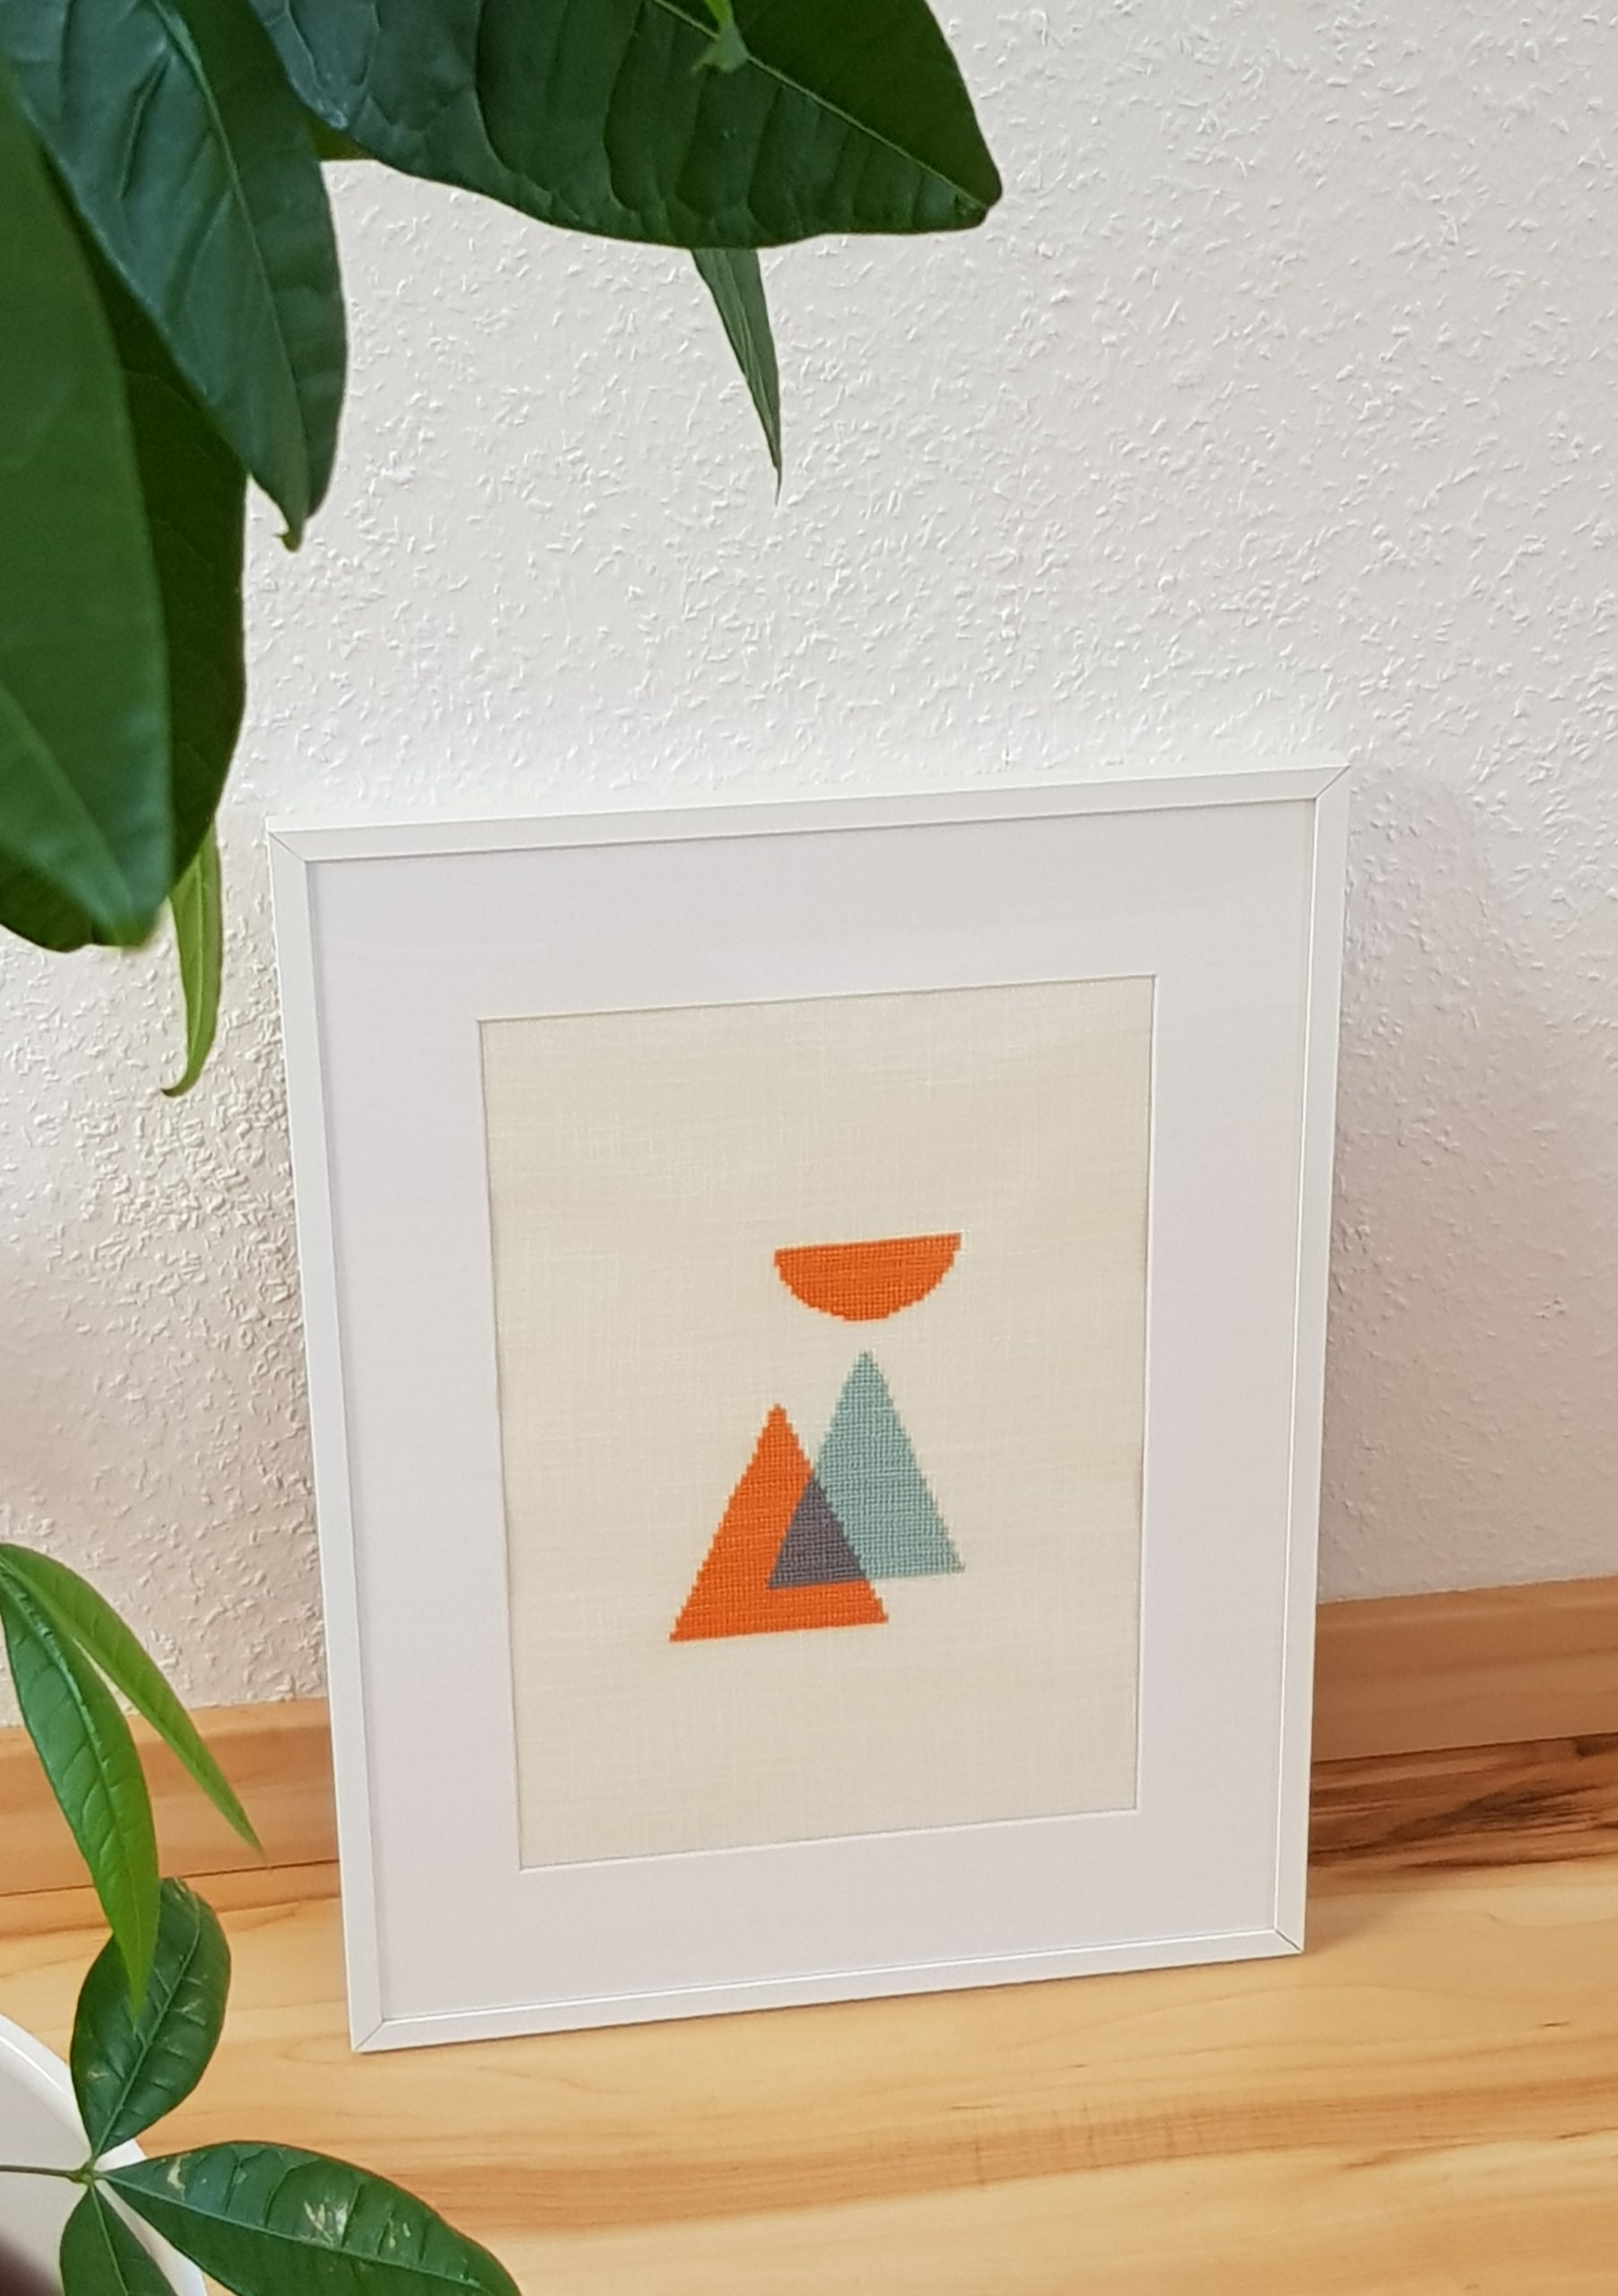 Minimalist cross stitch design